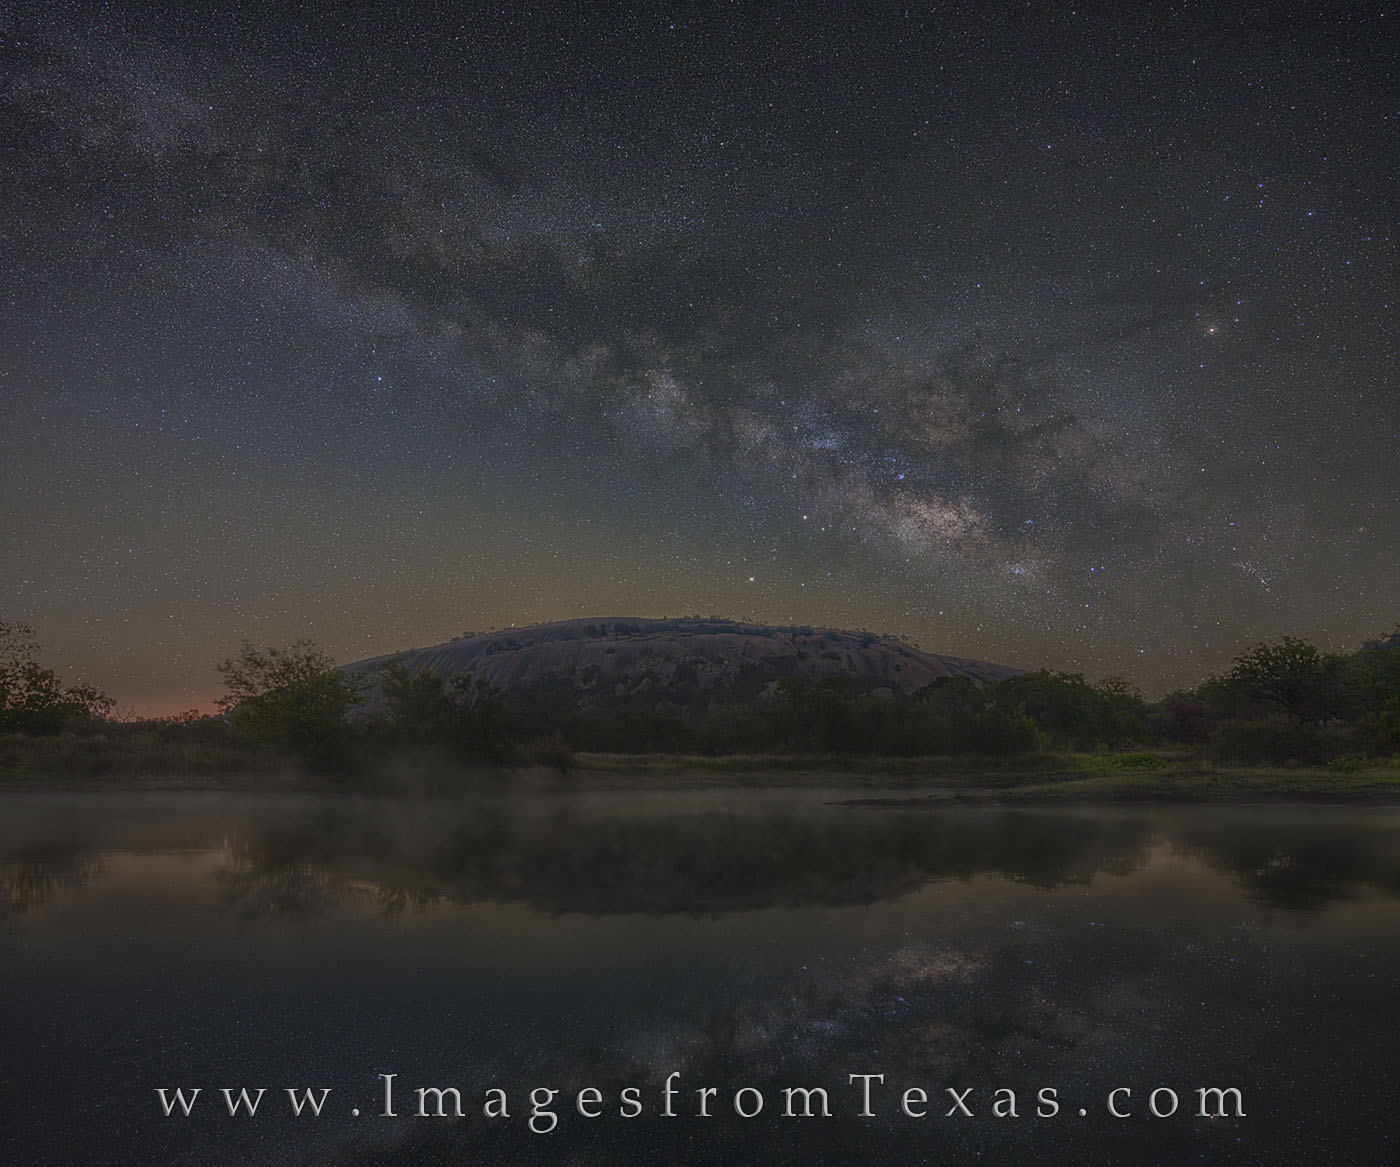 milky way, texas hill country, enchanted rock, moss lake, texas state parks, texas lakes, night sky, dark skies, photo